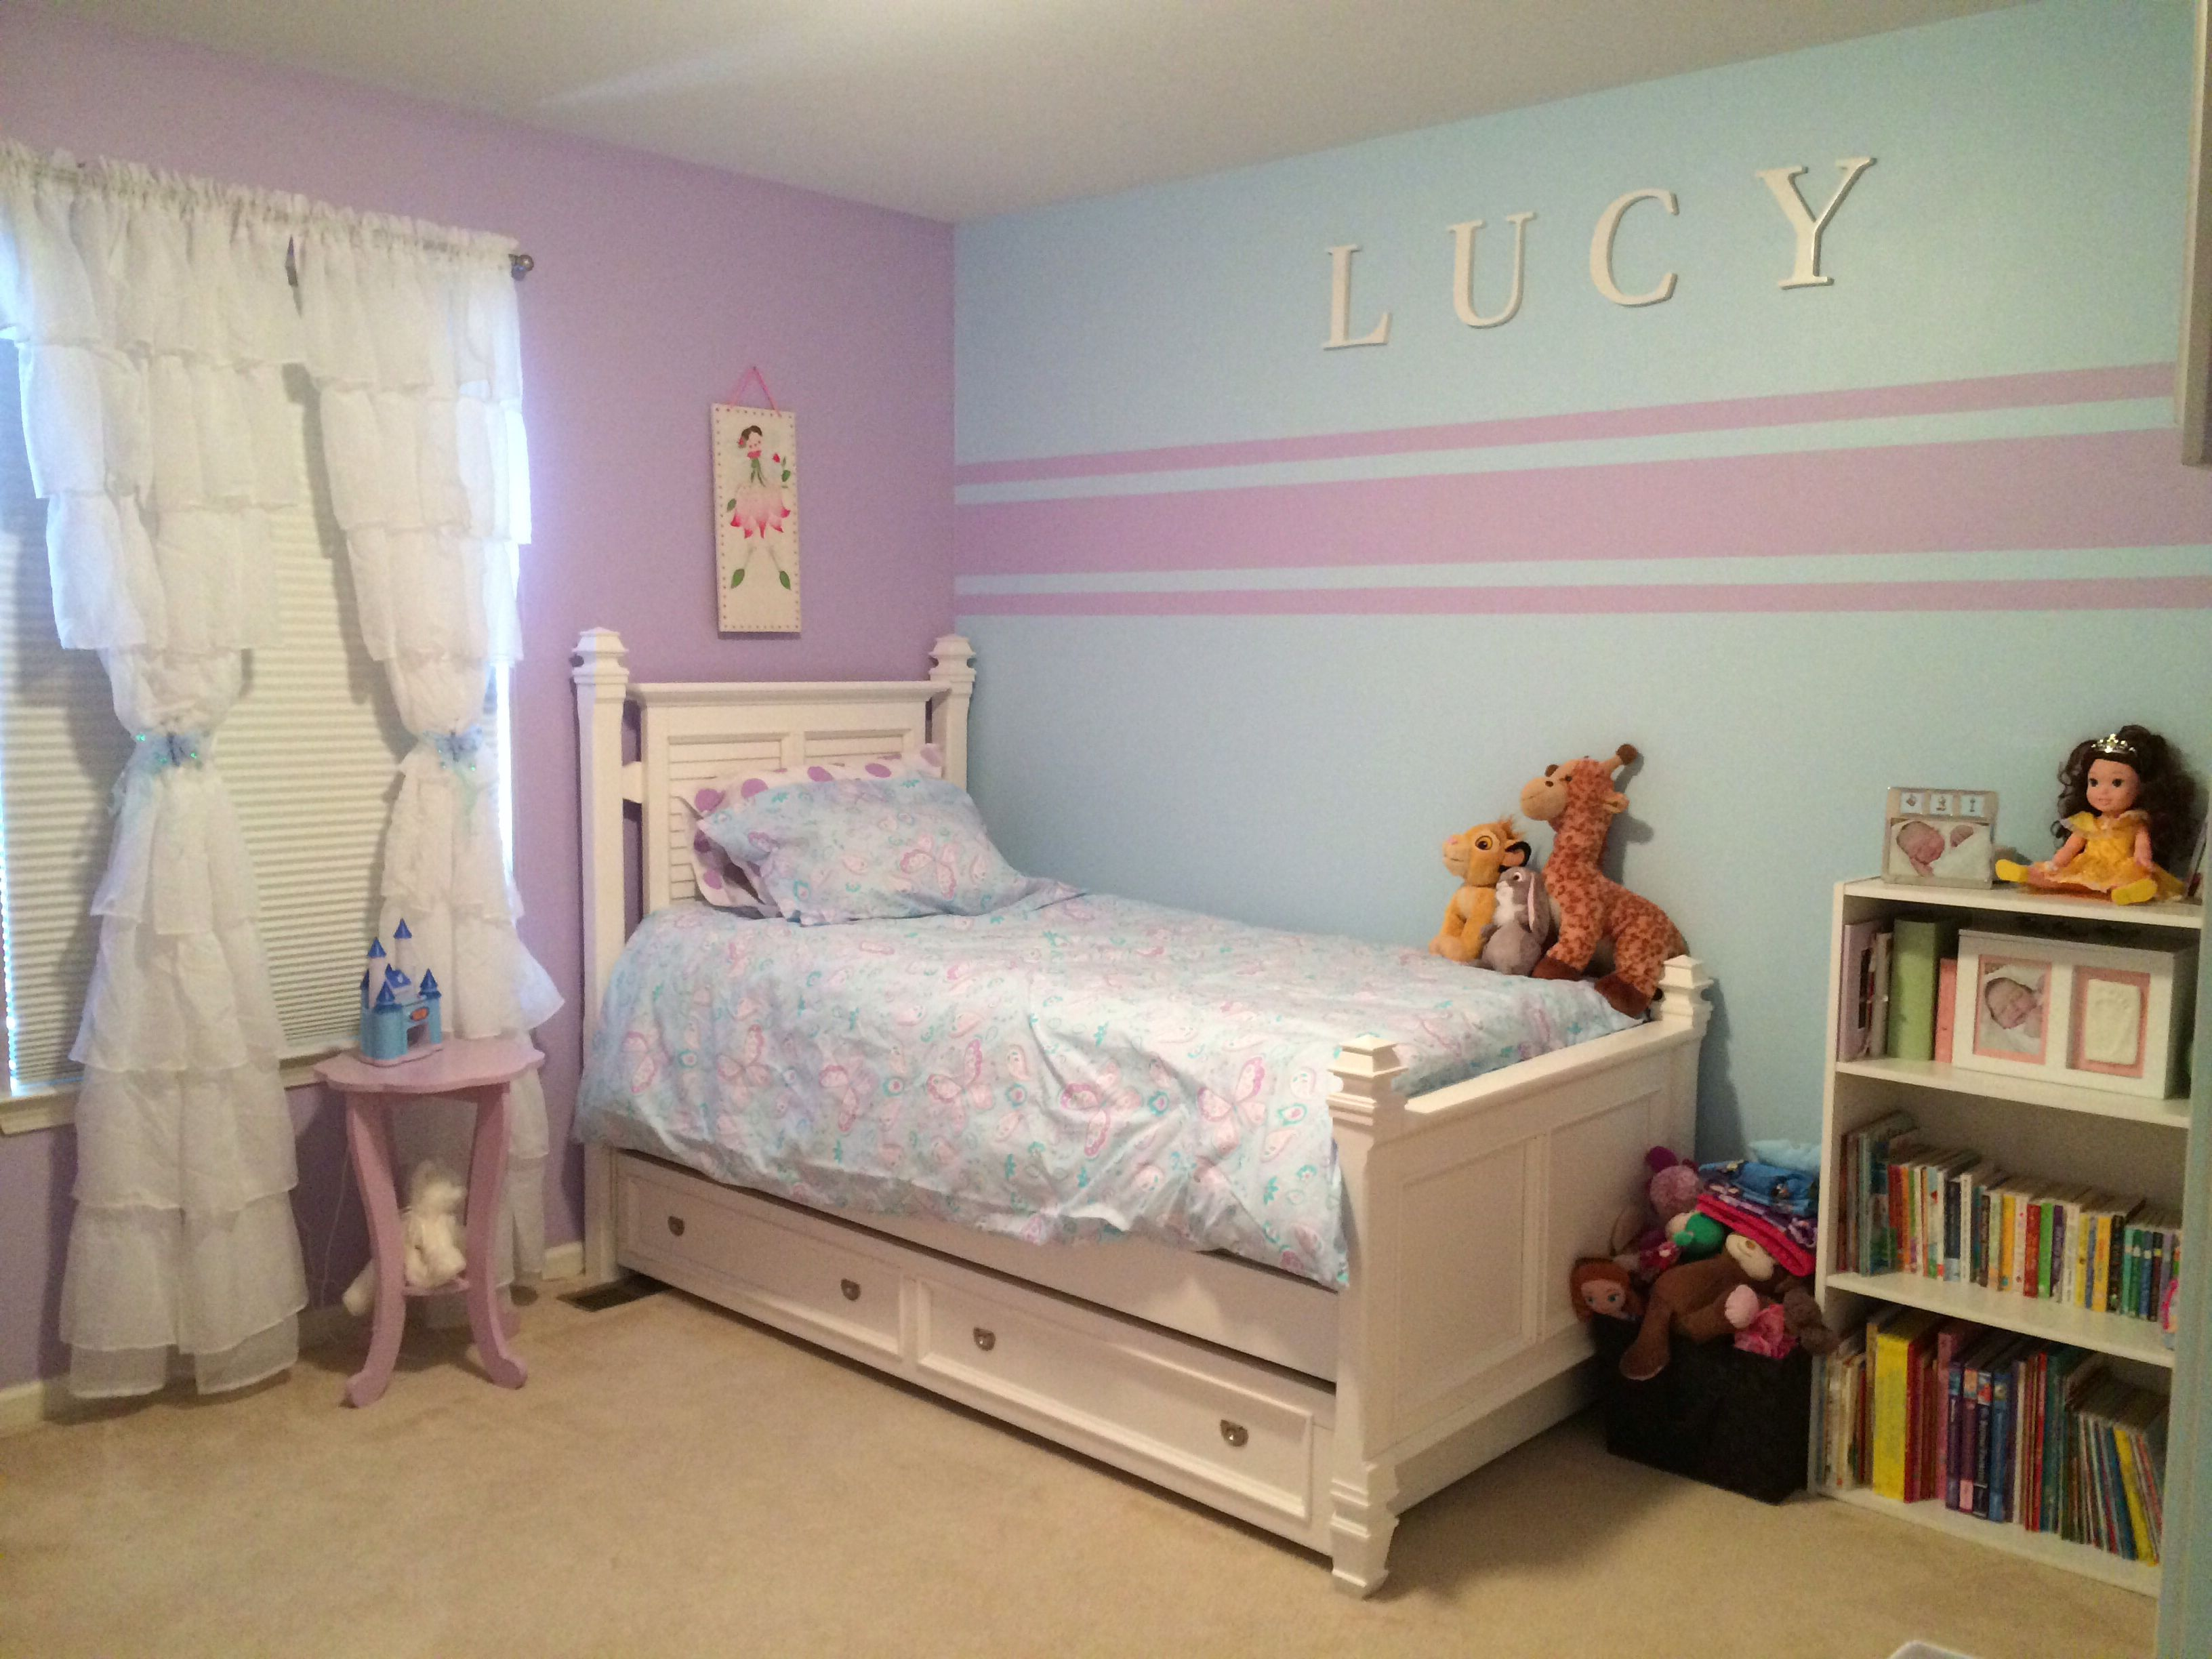 Awesome Accent Wall Stripes For Little Girl Room. Kristin Duvet Set Pottery Barn  Kids. Blue Paint Soar From Sherwin Williams Blue And Purple. #big Girl Room  Ideas